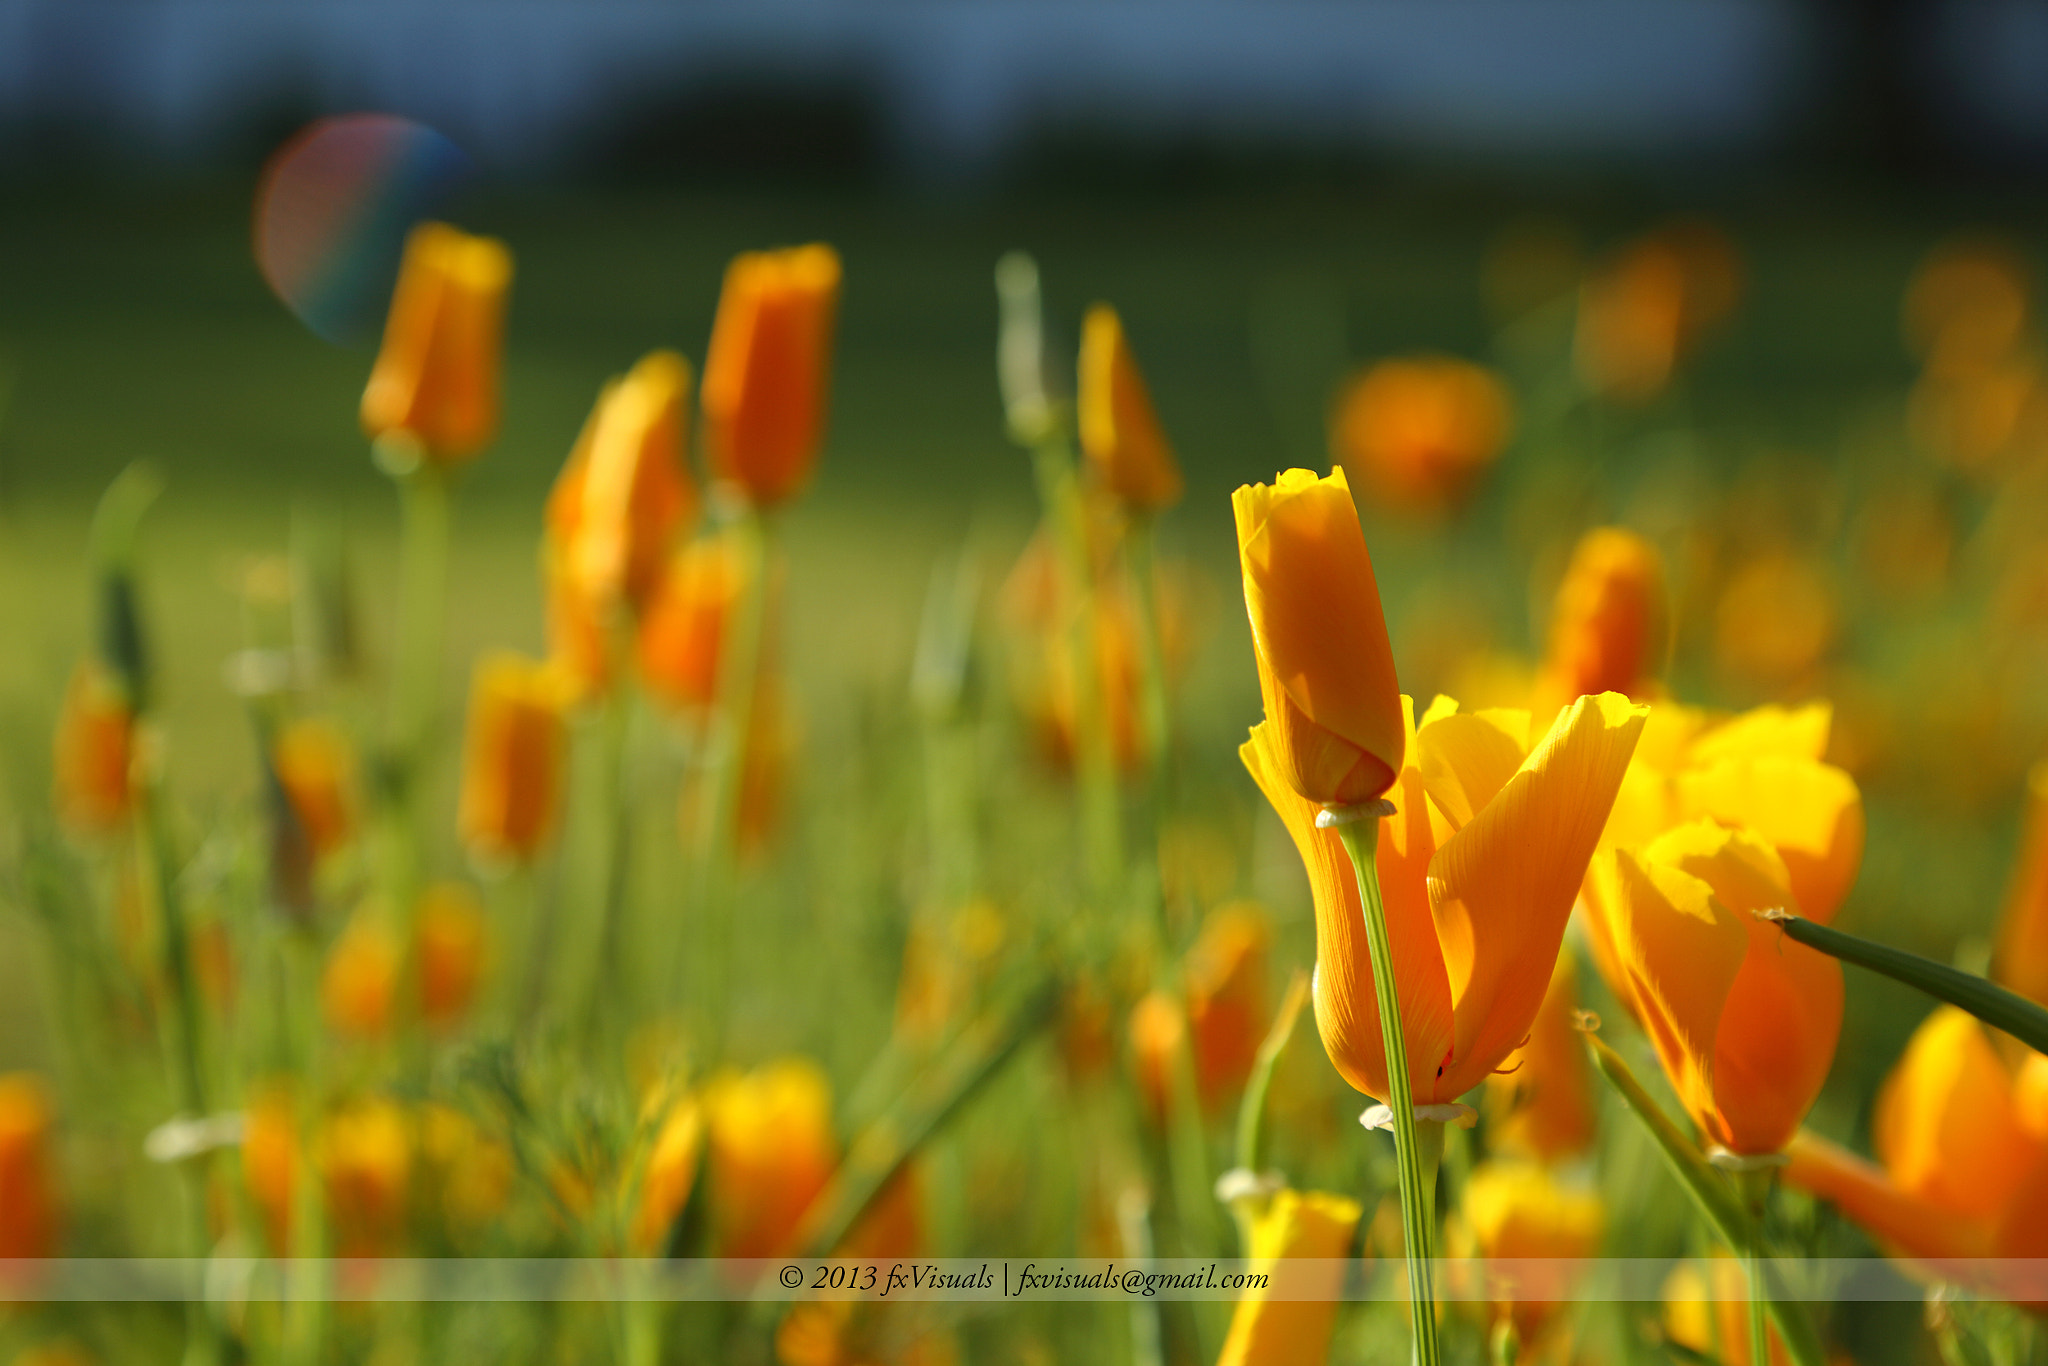 Photograph Morning Glow by Dilip Singh on 500px